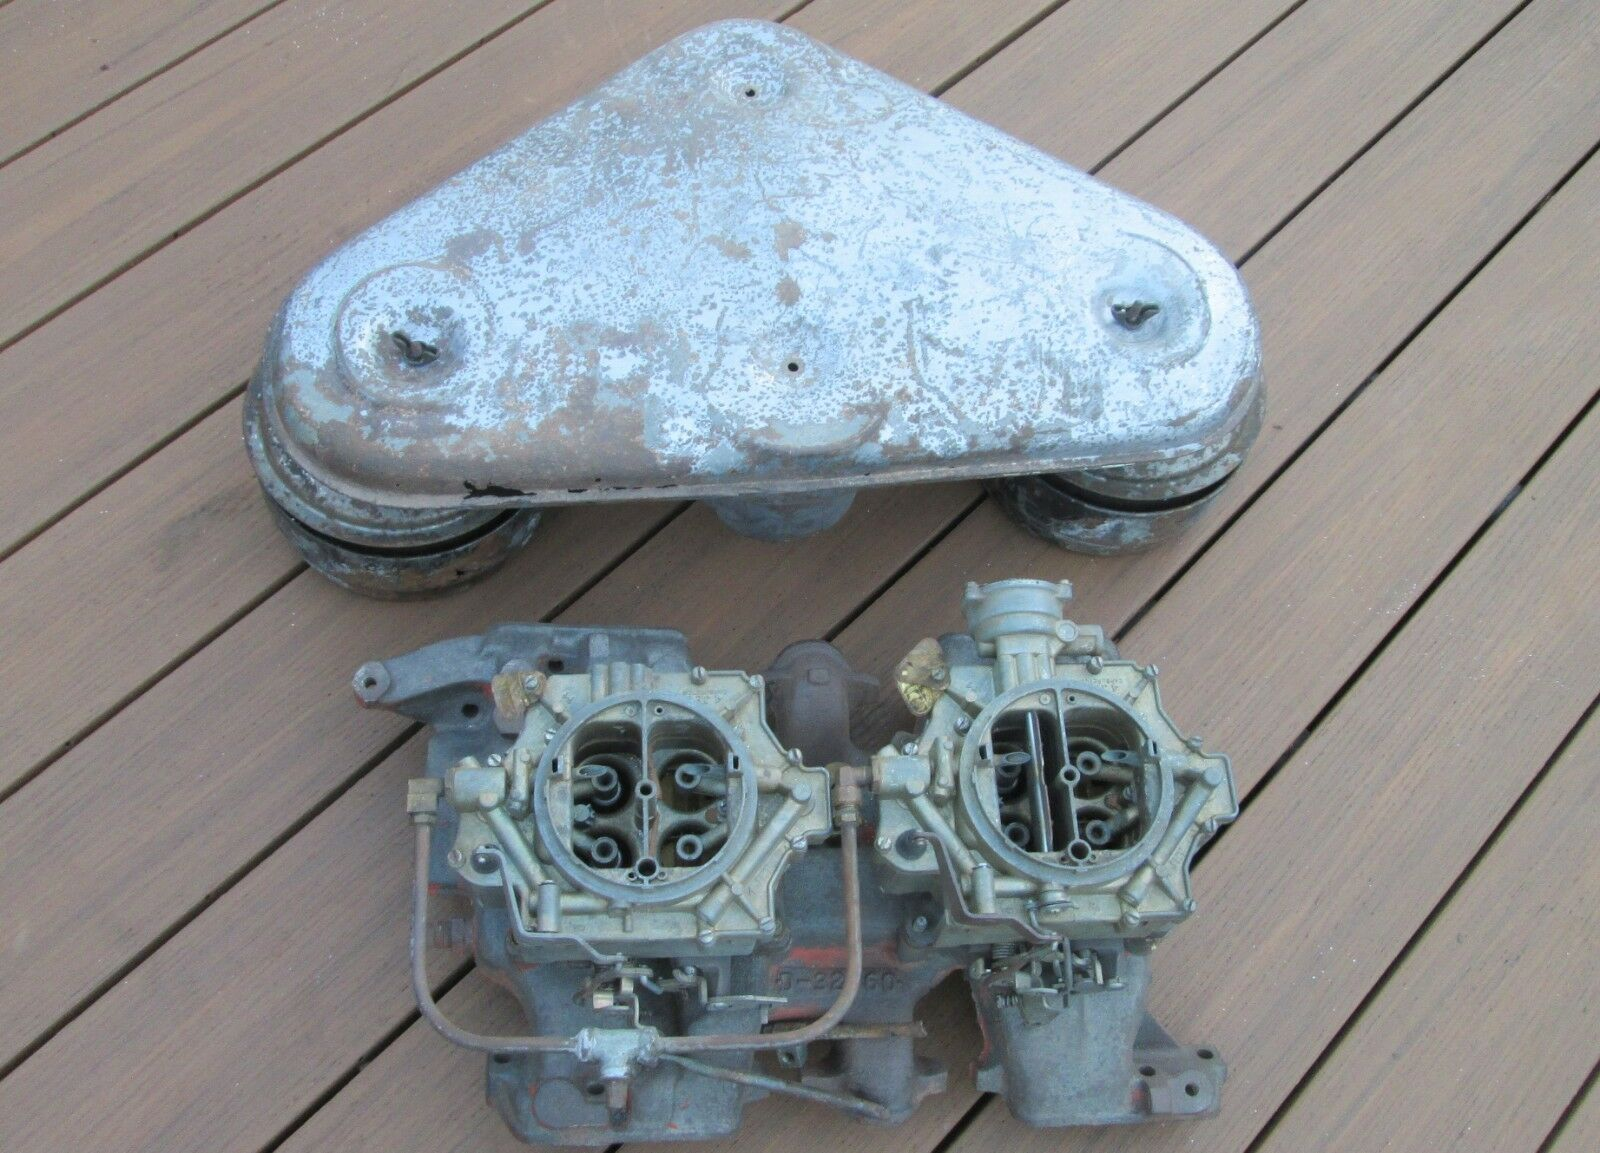 Dual Quad Deal: This 1956 Pontiac 2×4 Intake, Carb, and Air Cleaner Setup Is Exceedingly Rare!